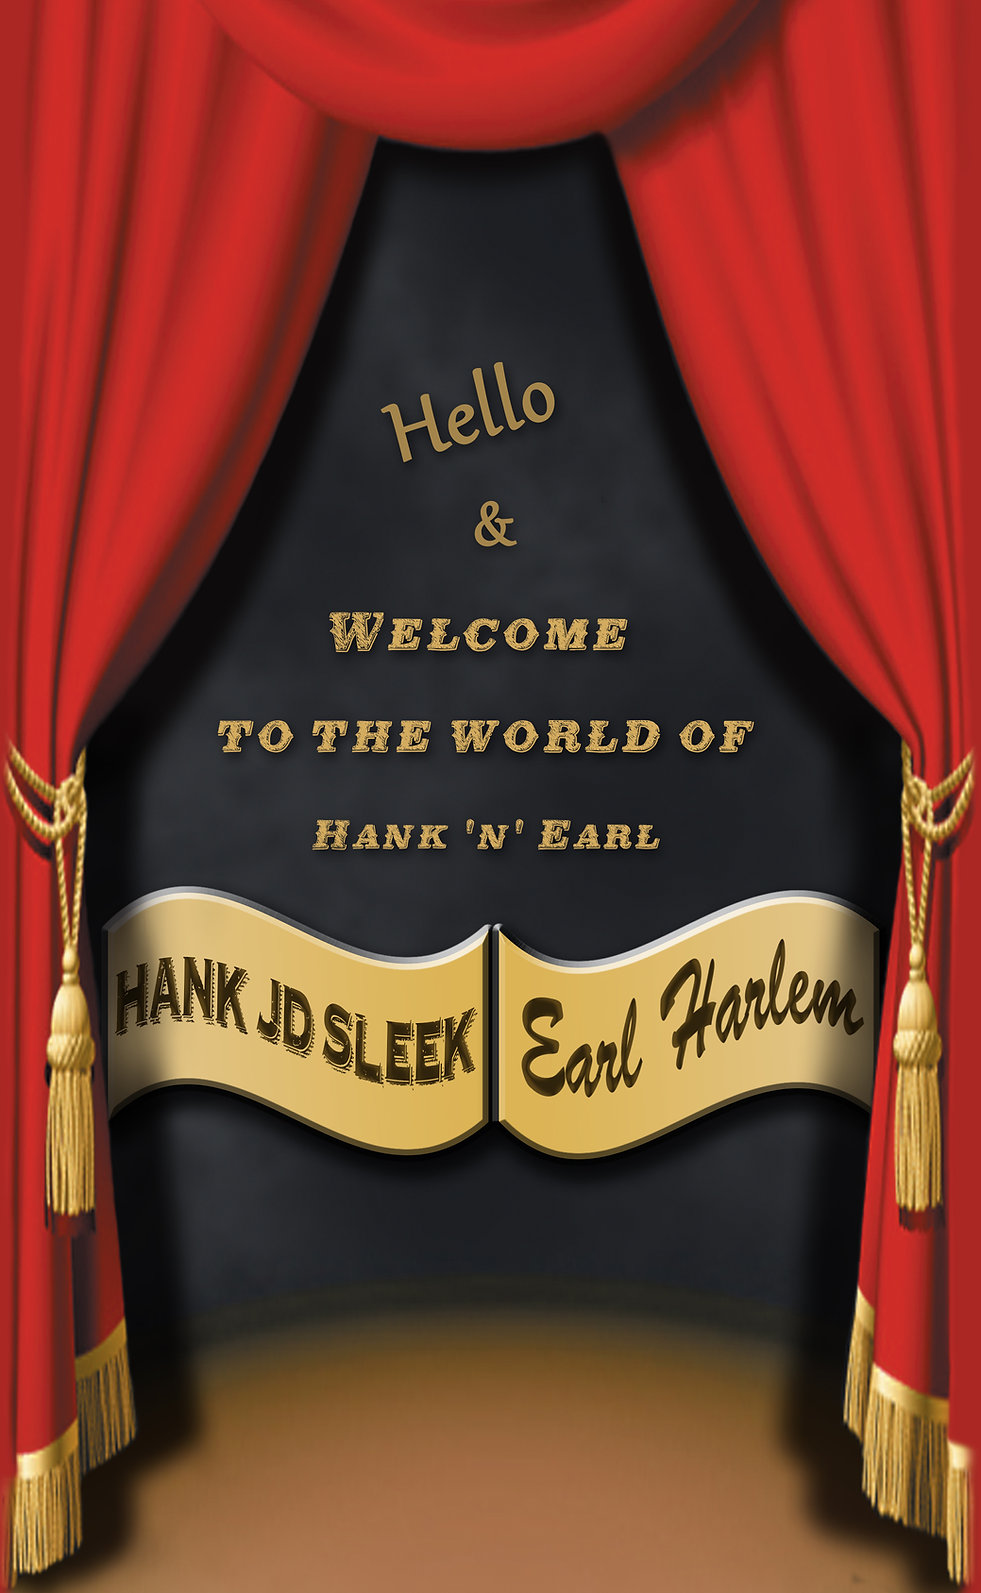 Welcome to the world of Hank 'n' Earl